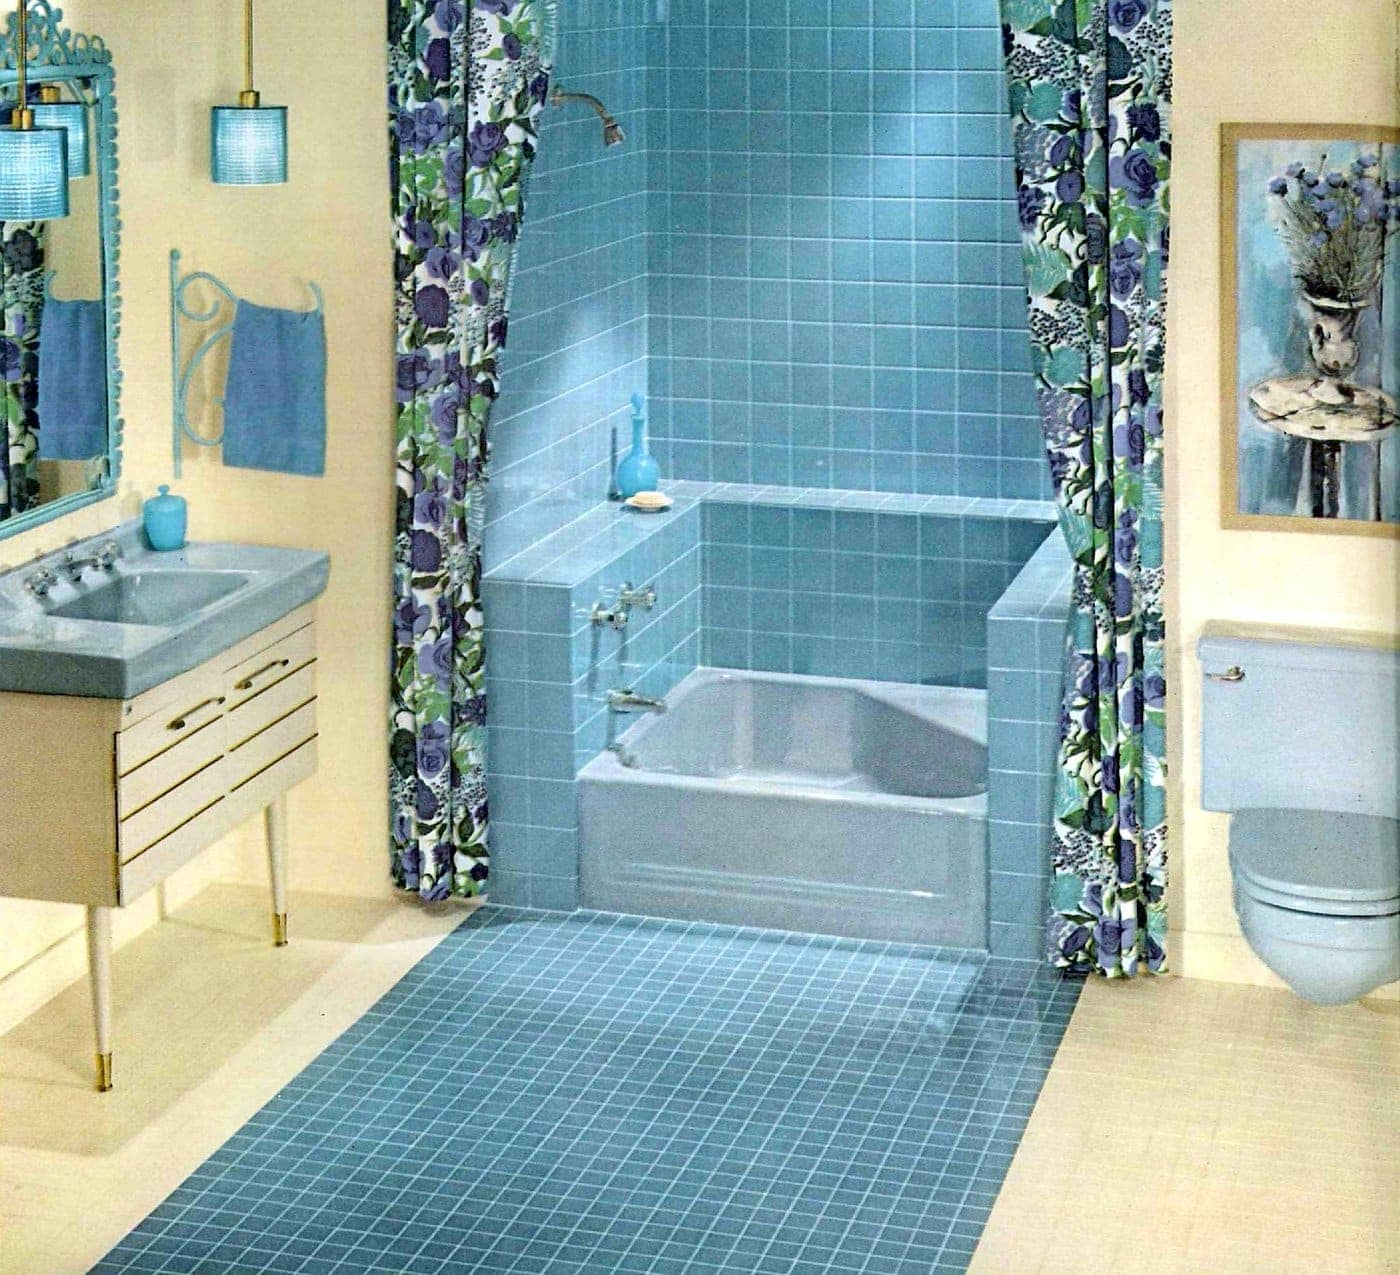 Blue tiled shower enclosure with small square bathtub